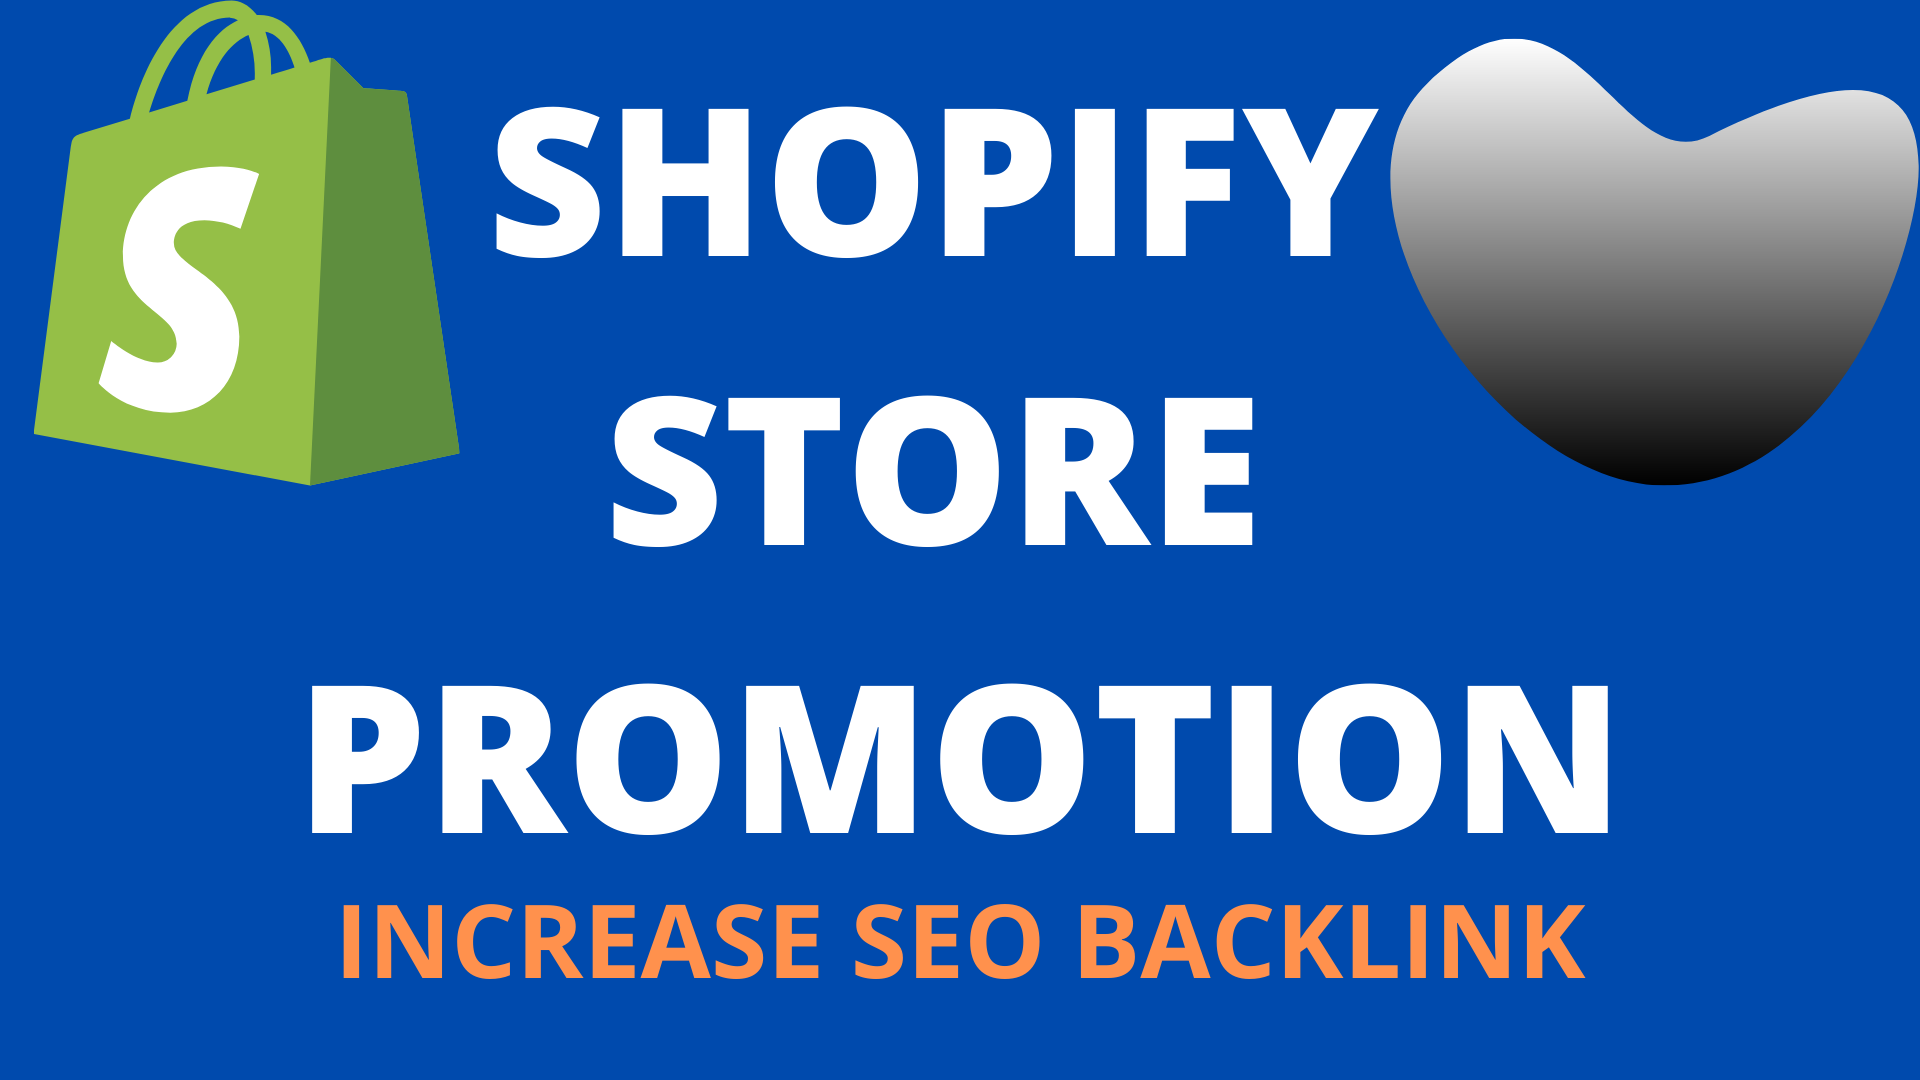 I will do store promotion with 400k seo backlinks